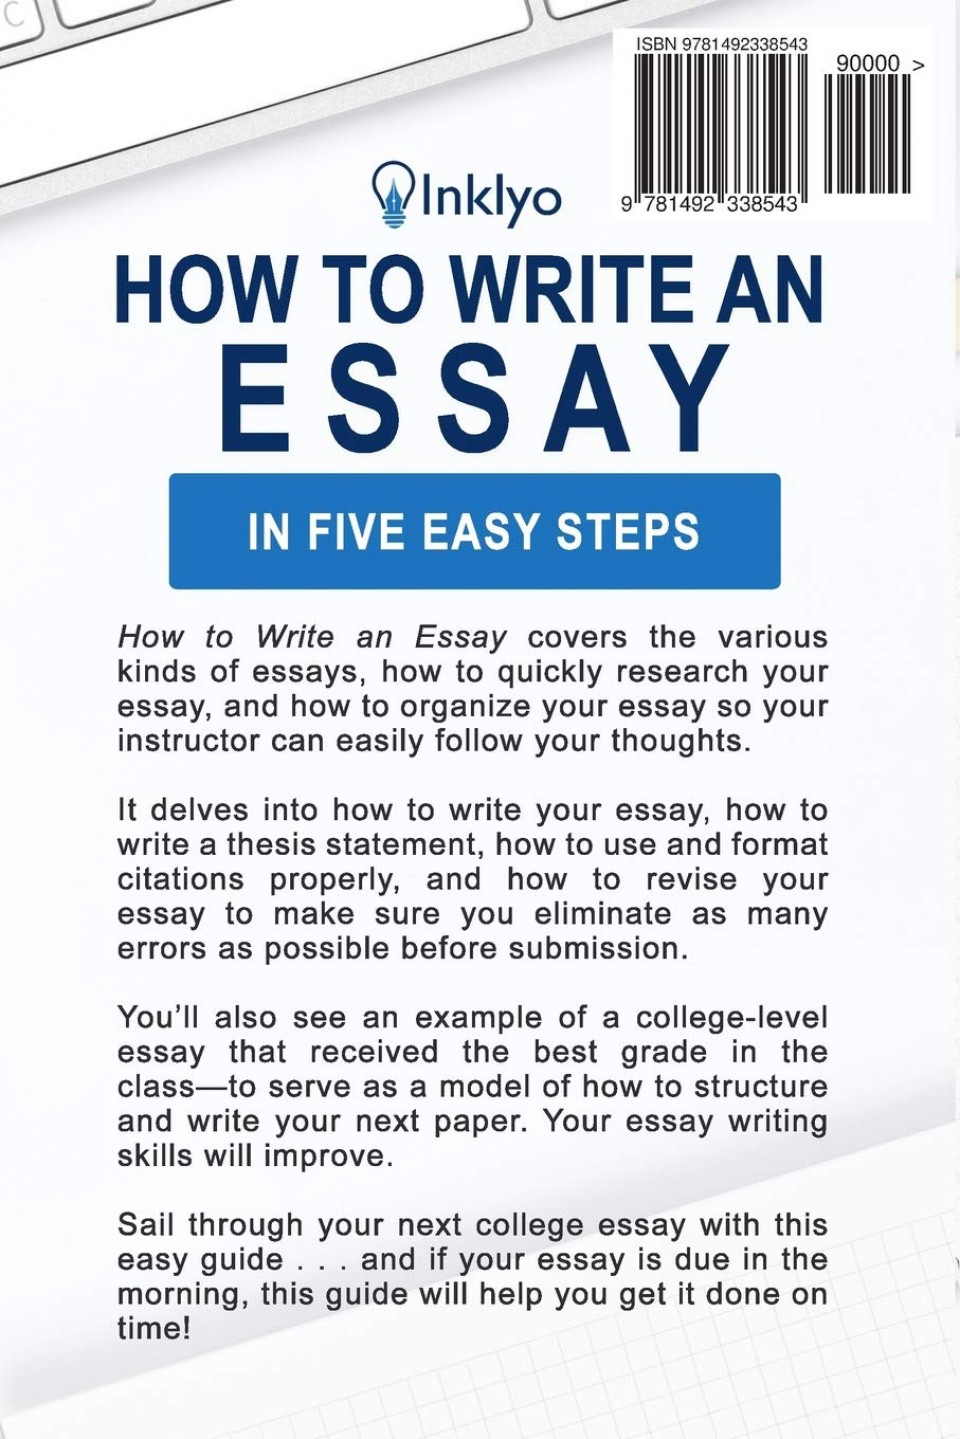 002 How To Write An Essay Example Shocking About Yourself Conclusion Pdf Academic Fast 960